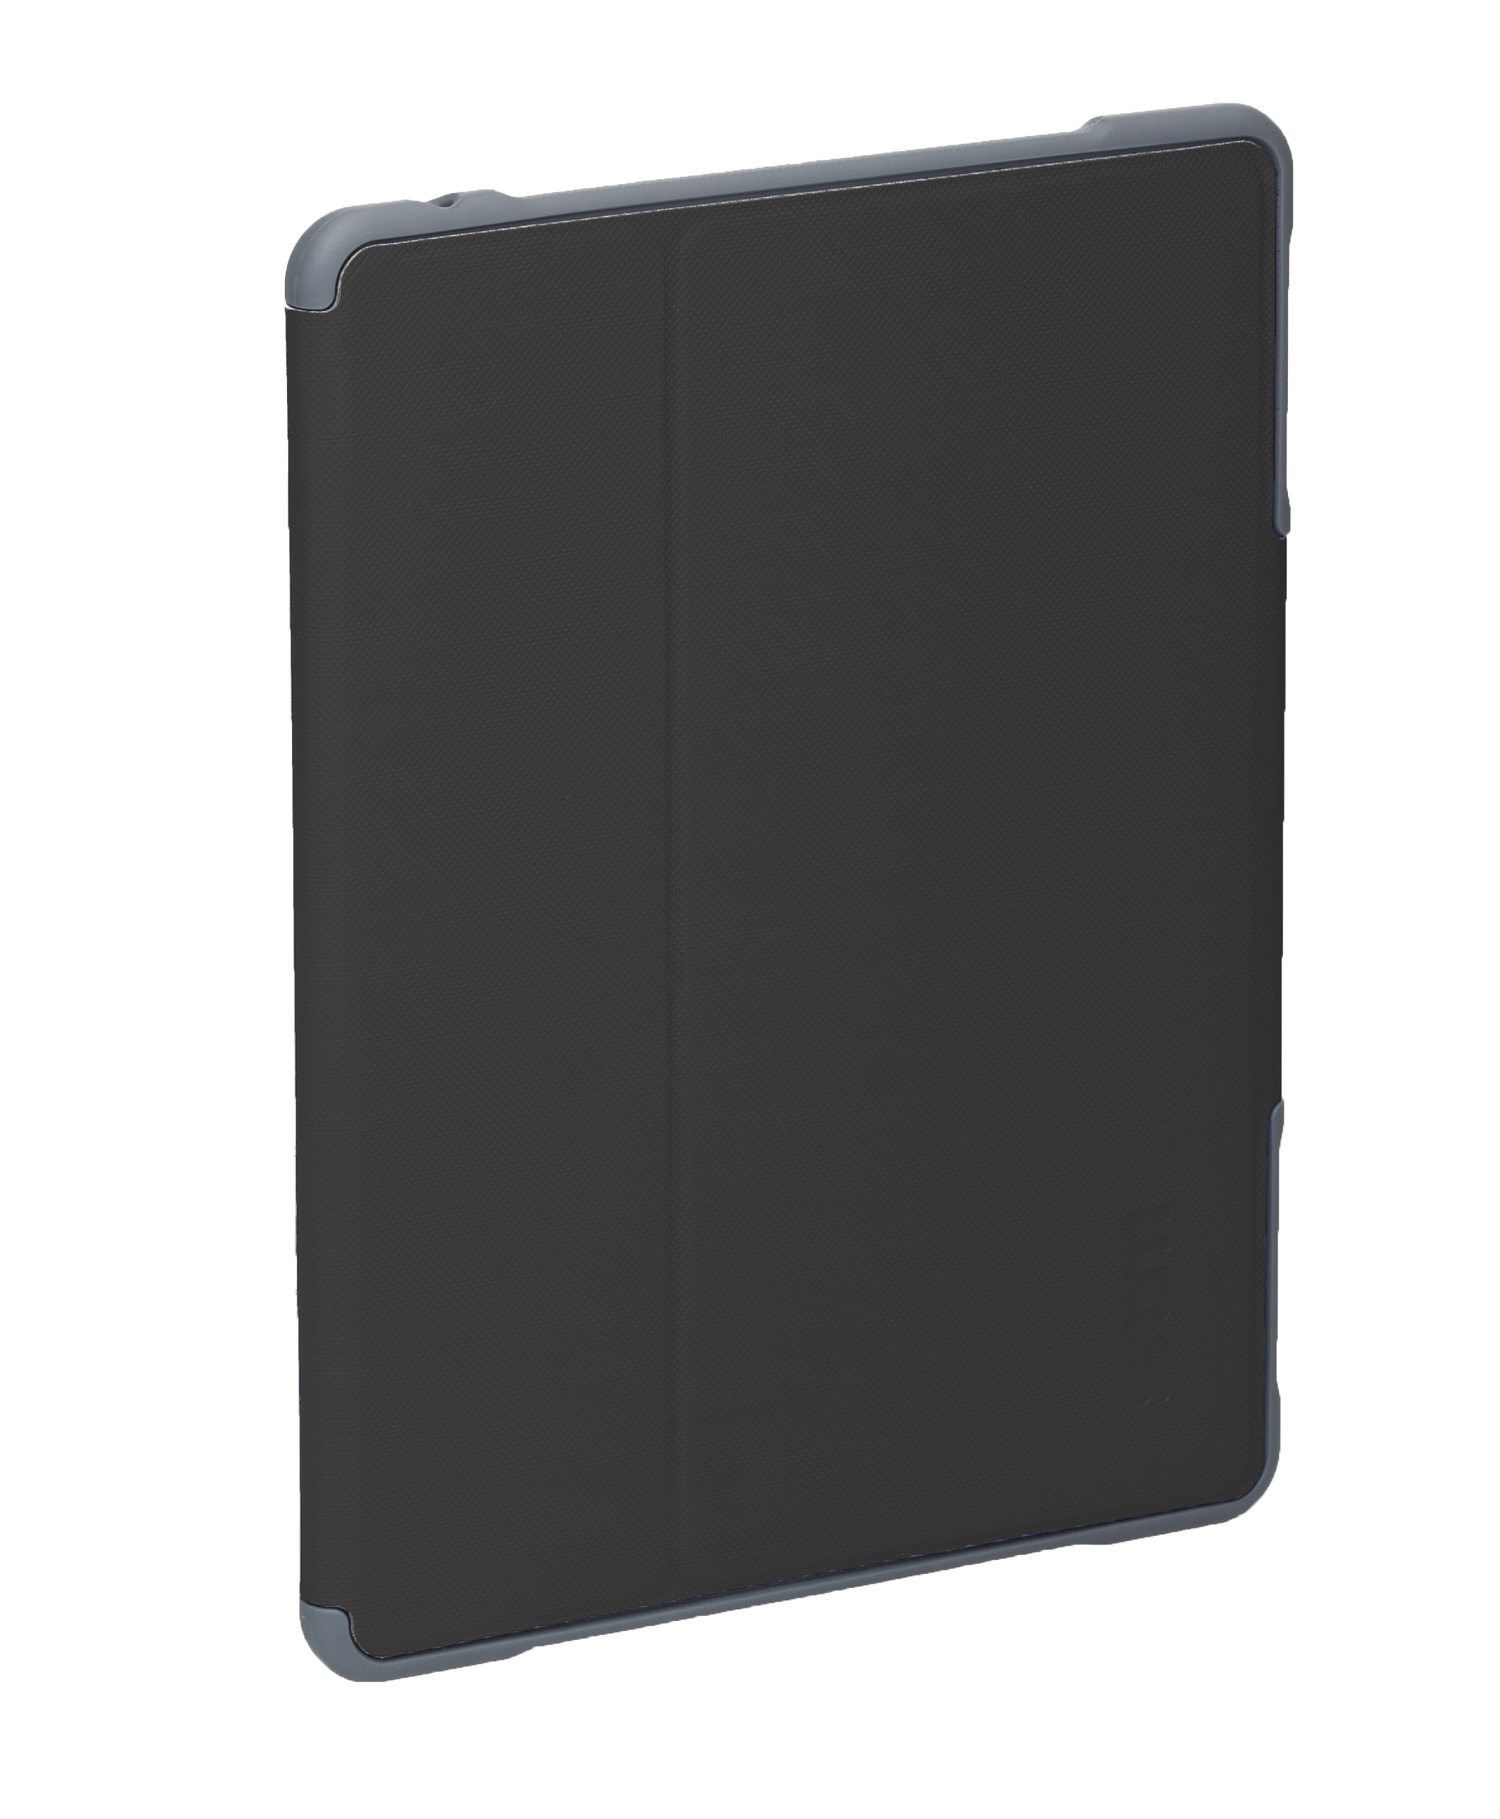 STM Dux Ultra Protective Case for iPad 2/3/4